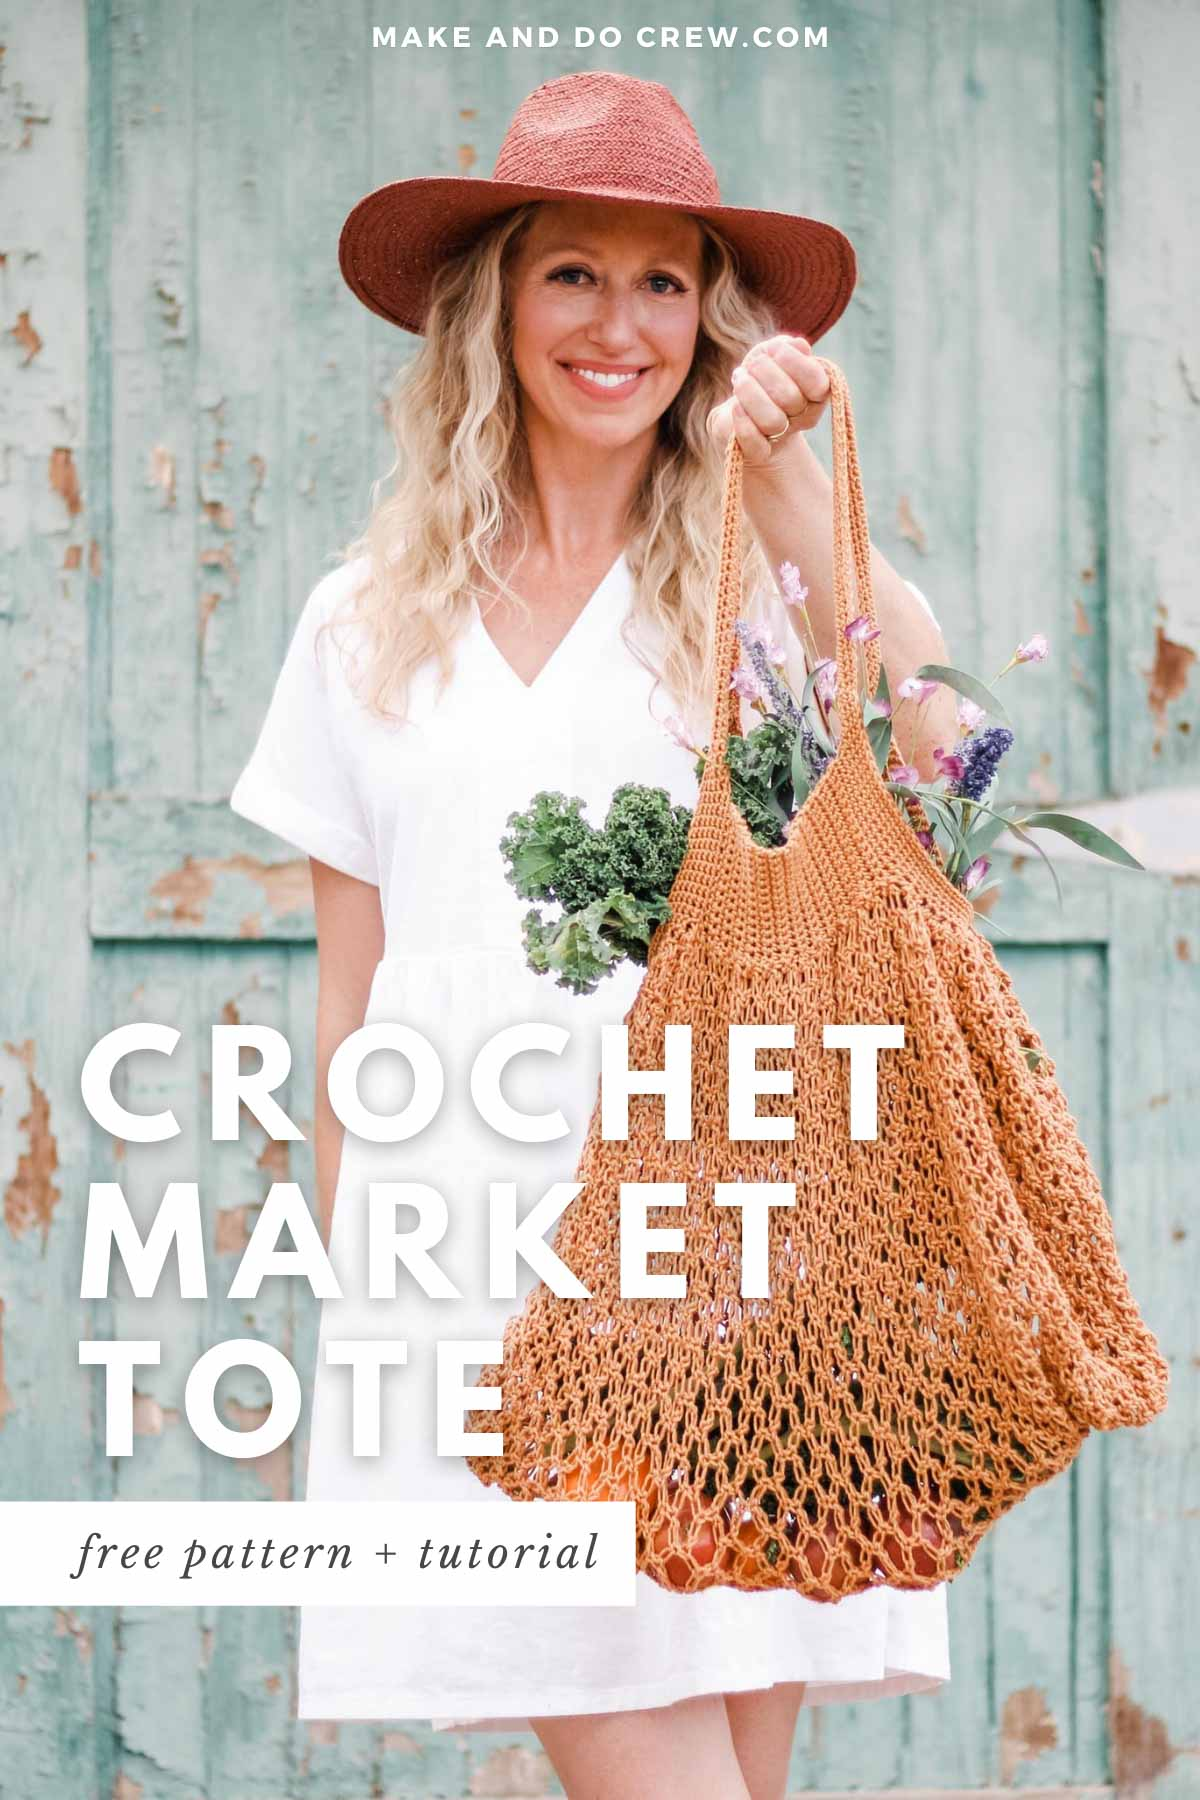 A woman in the background holding a mesh crochet market tote bag filled with fresh produce.